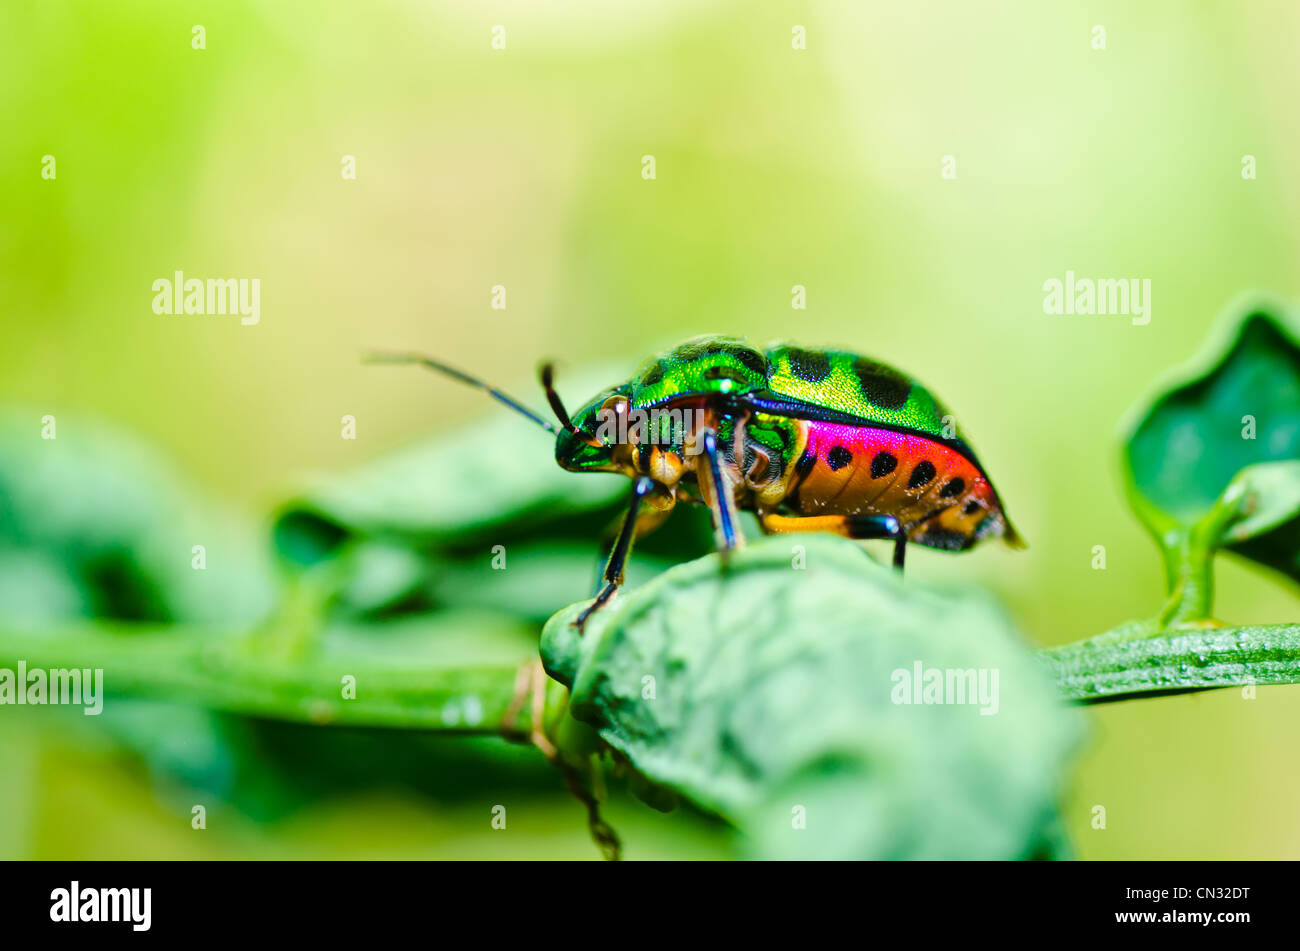 jewel beetle on leaf in green nature or in the garden - Stock Image